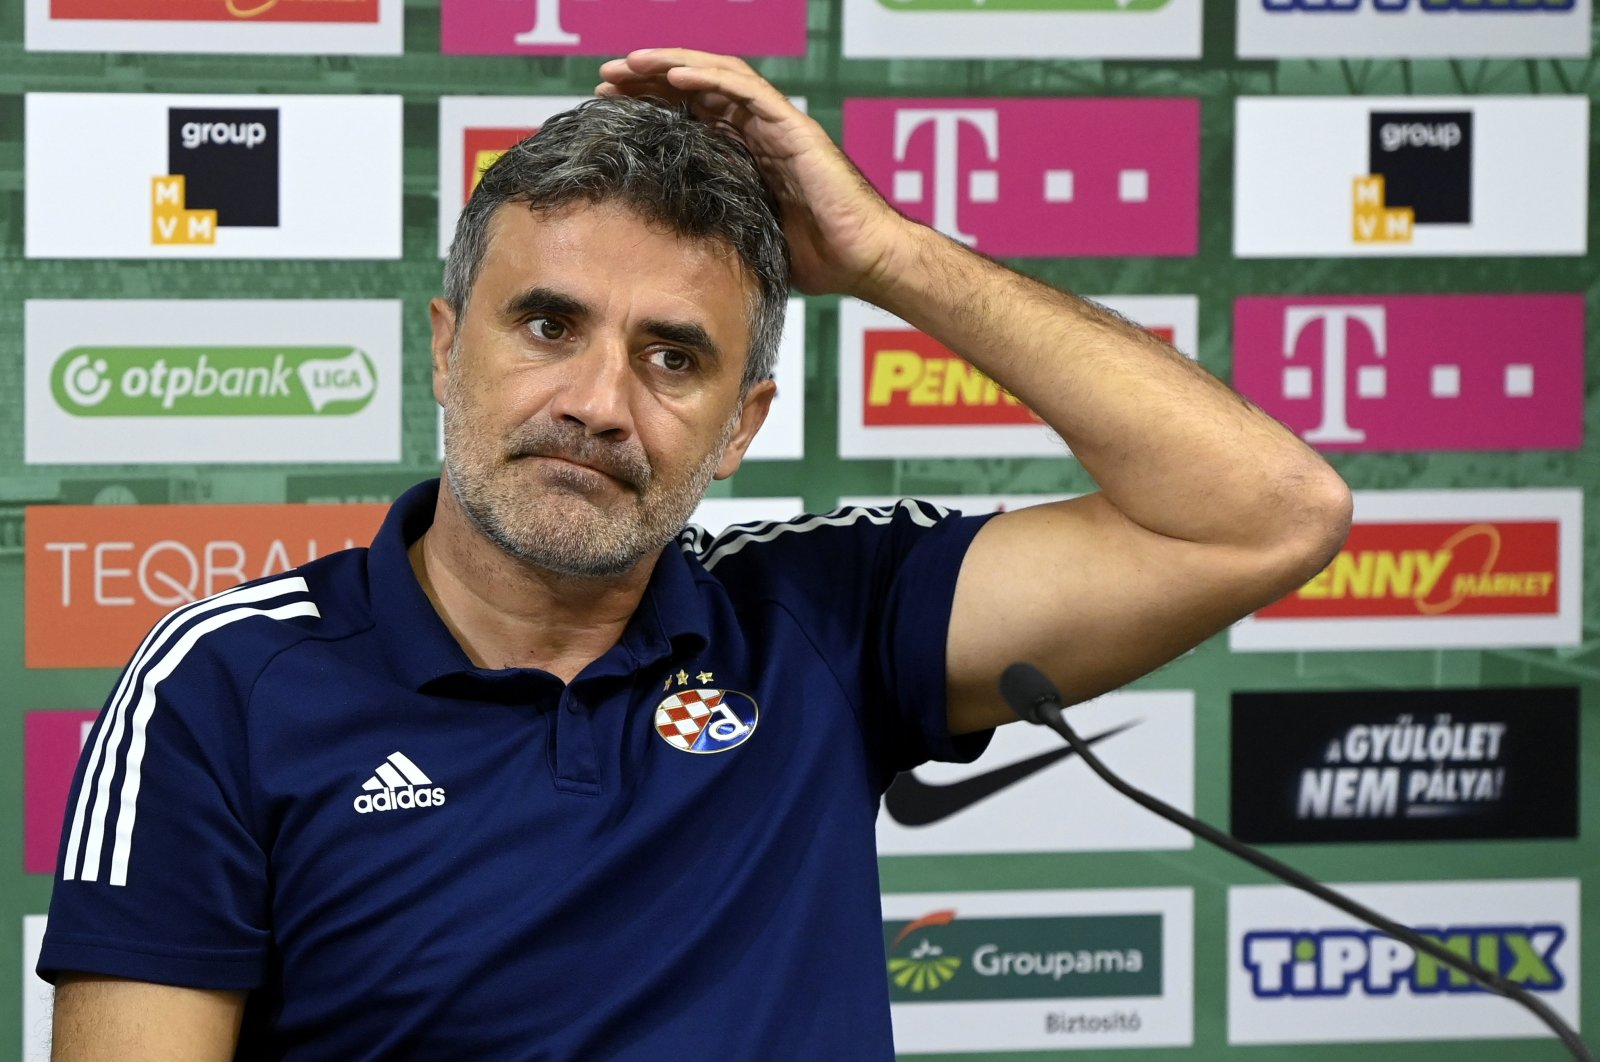 Dinamo Zagreb head coach Zoran Mamic attends a news conference in Budapest, Hungary, Sept. 15, 2020. (AP Photo)